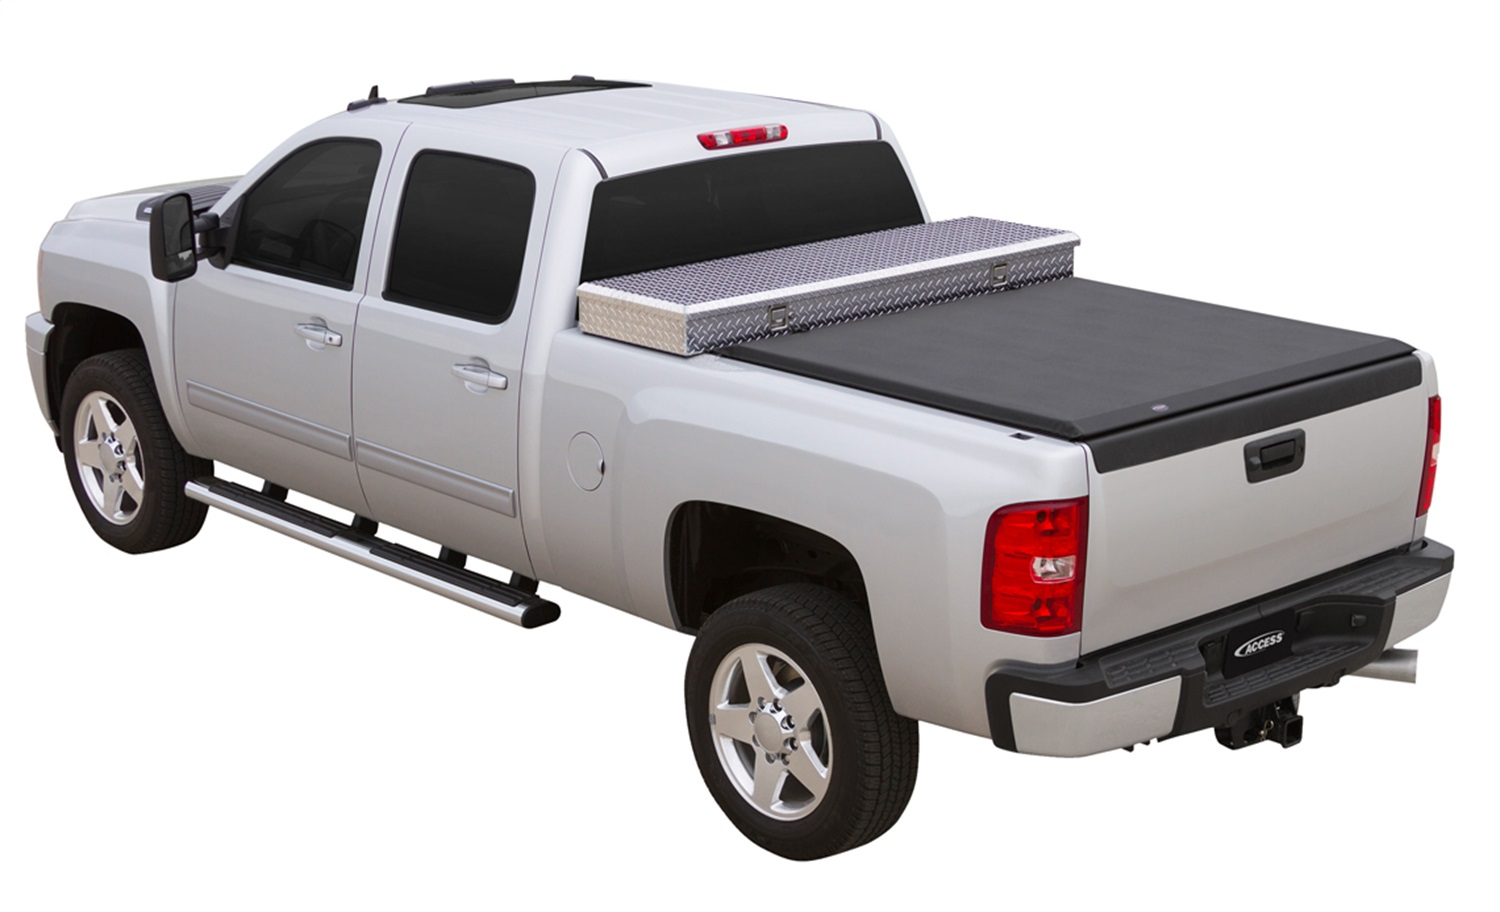 Access Cover 62329 ACCESS Toolbox Edition Roll-Up Cover